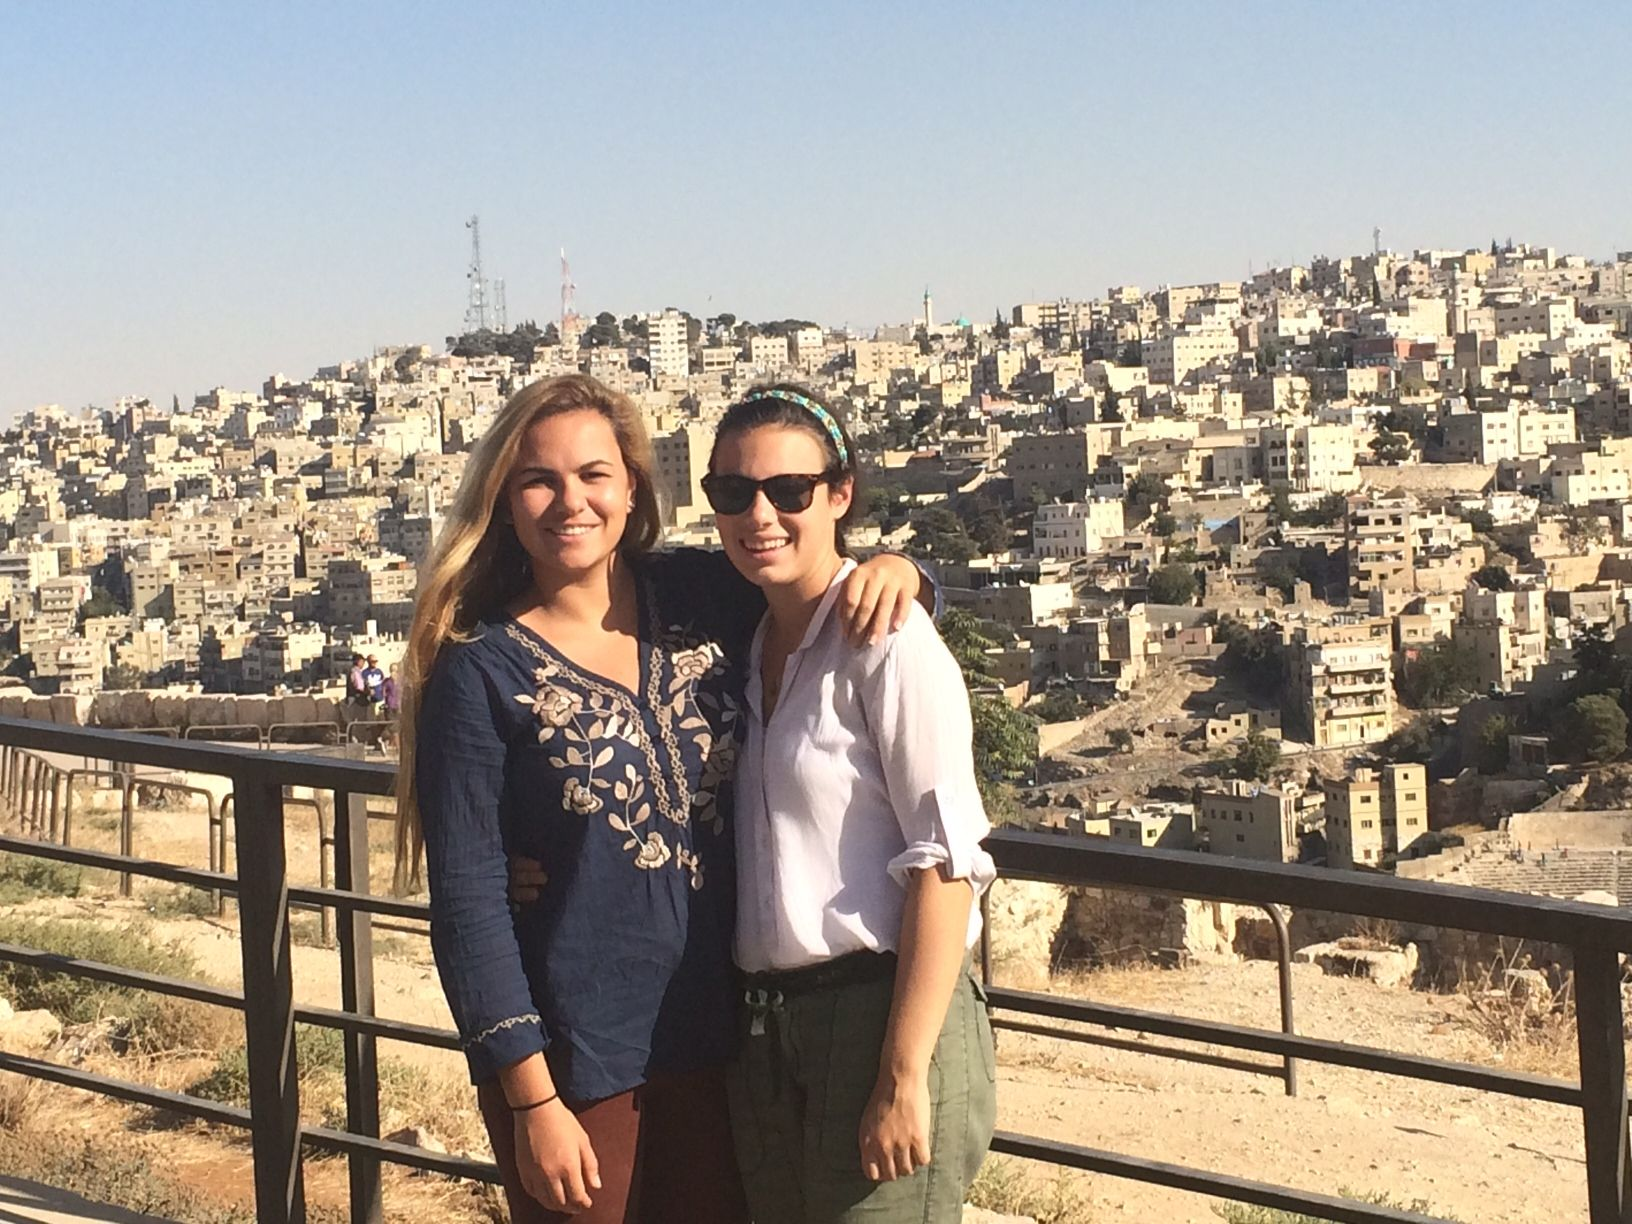 Arianne Evans '16 and Ally Edwards '17 at the Citadel in Amman Photo Credit: David Miller